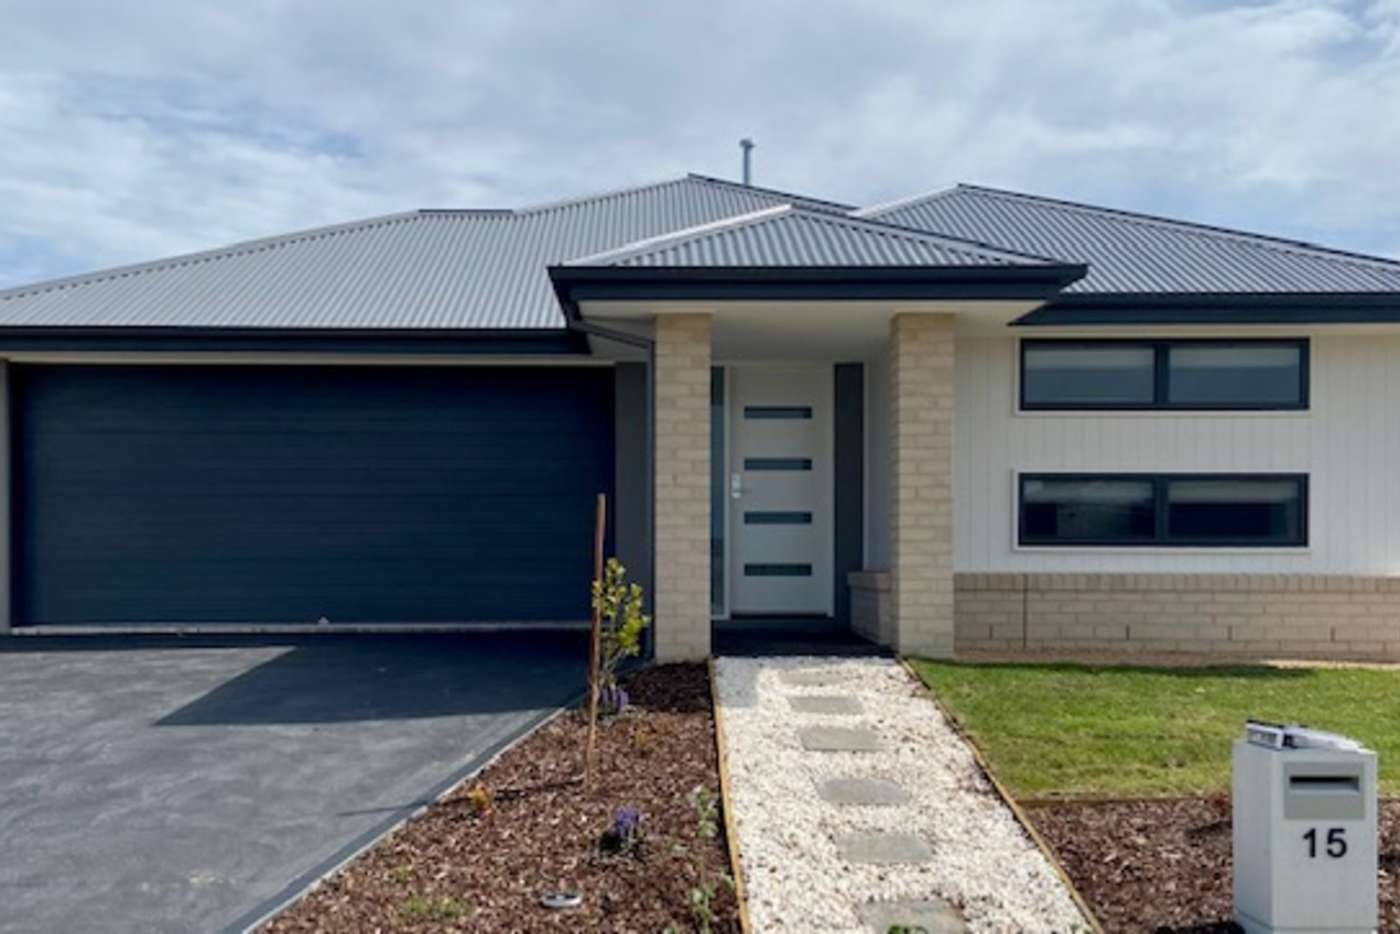 Main view of Homely house listing, 15 Boxer Drive, Wyndham Vale VIC 3024